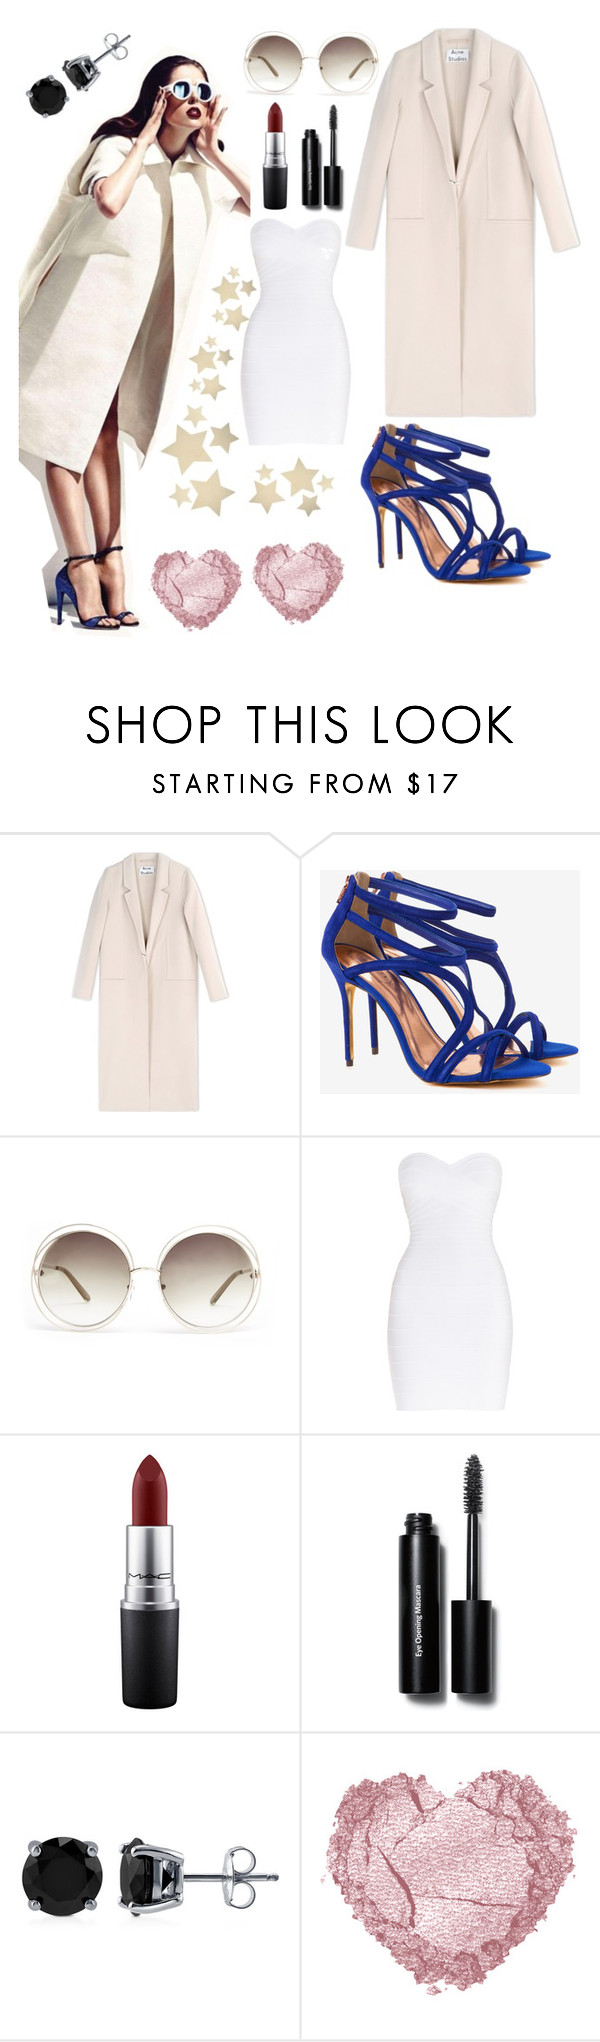 """""""chic #!!"""" by slandinez ❤ liked on Polyvore featuring Acne Studios, Ted Baker, Chloé, Hervé Léger, MAC Cosmetics, Bobbi Brown Cosmetics, BERRICLE and Bethany Lowe"""